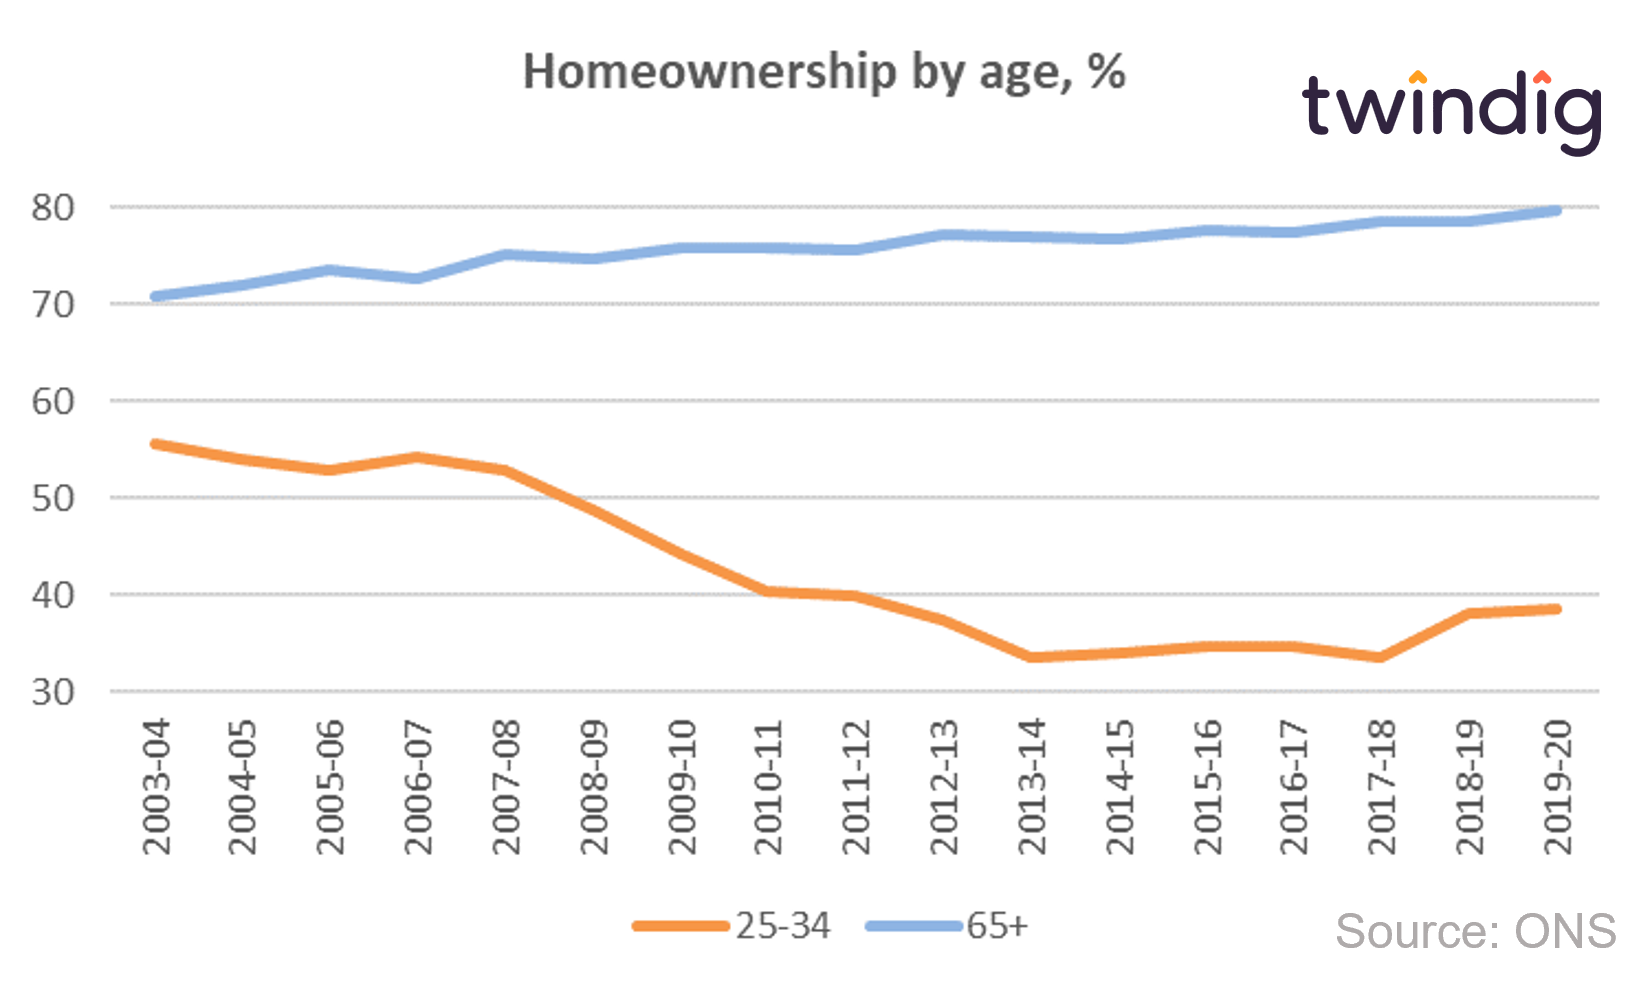 graph chart showing homeownership by age group twindig anthony codling